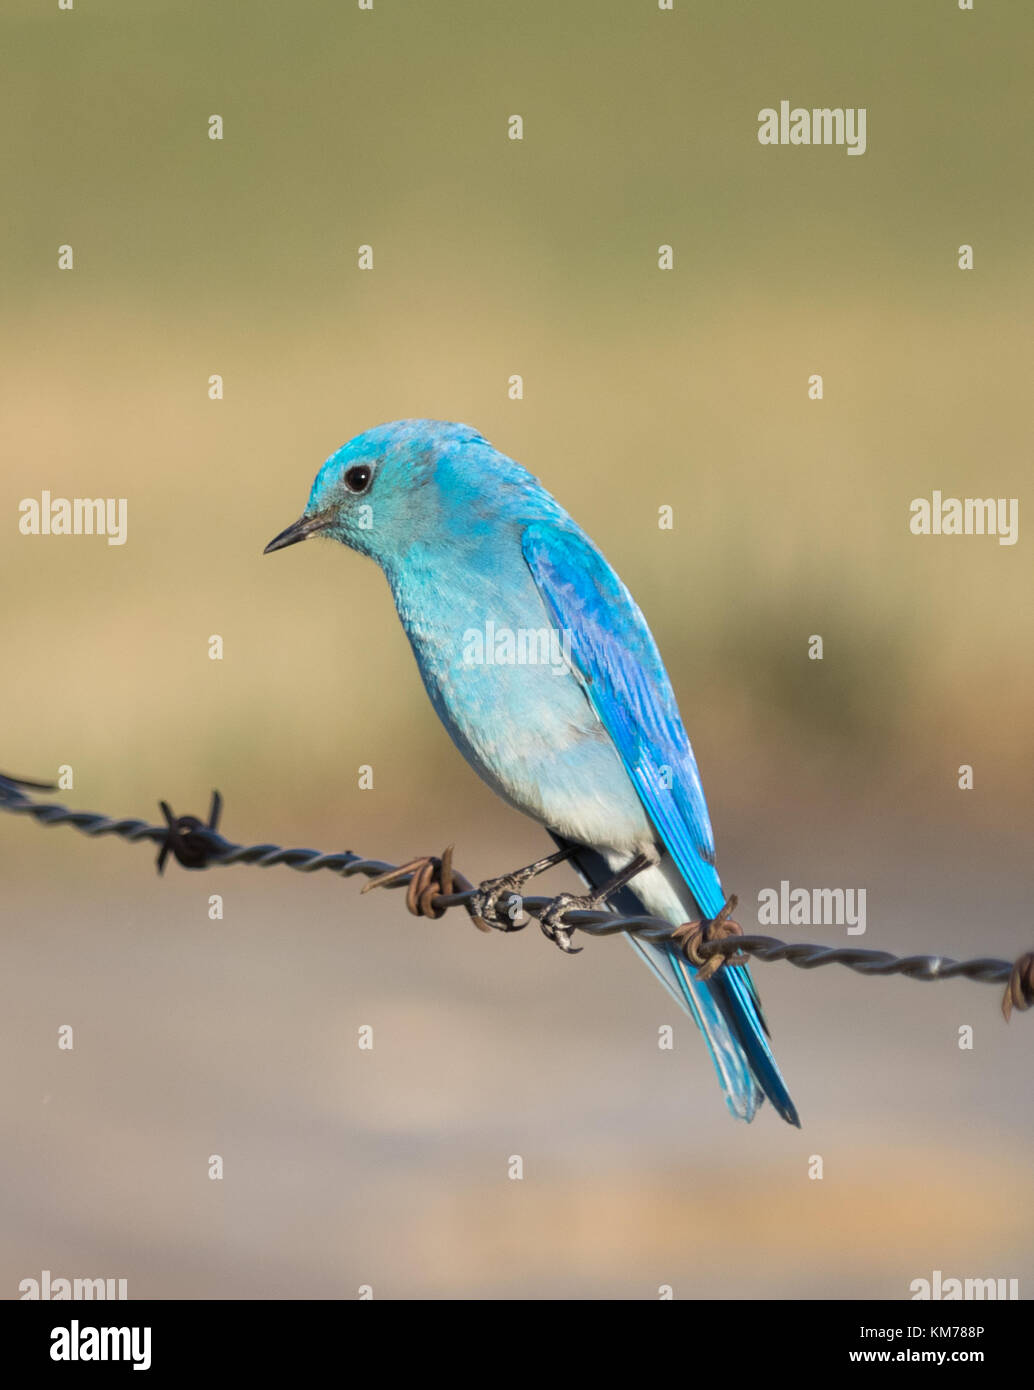 A male Mountain bluebird (Sialia currucoides), in breeding plumage, perched near Tofield, Alberta, Canada. Stock Photo